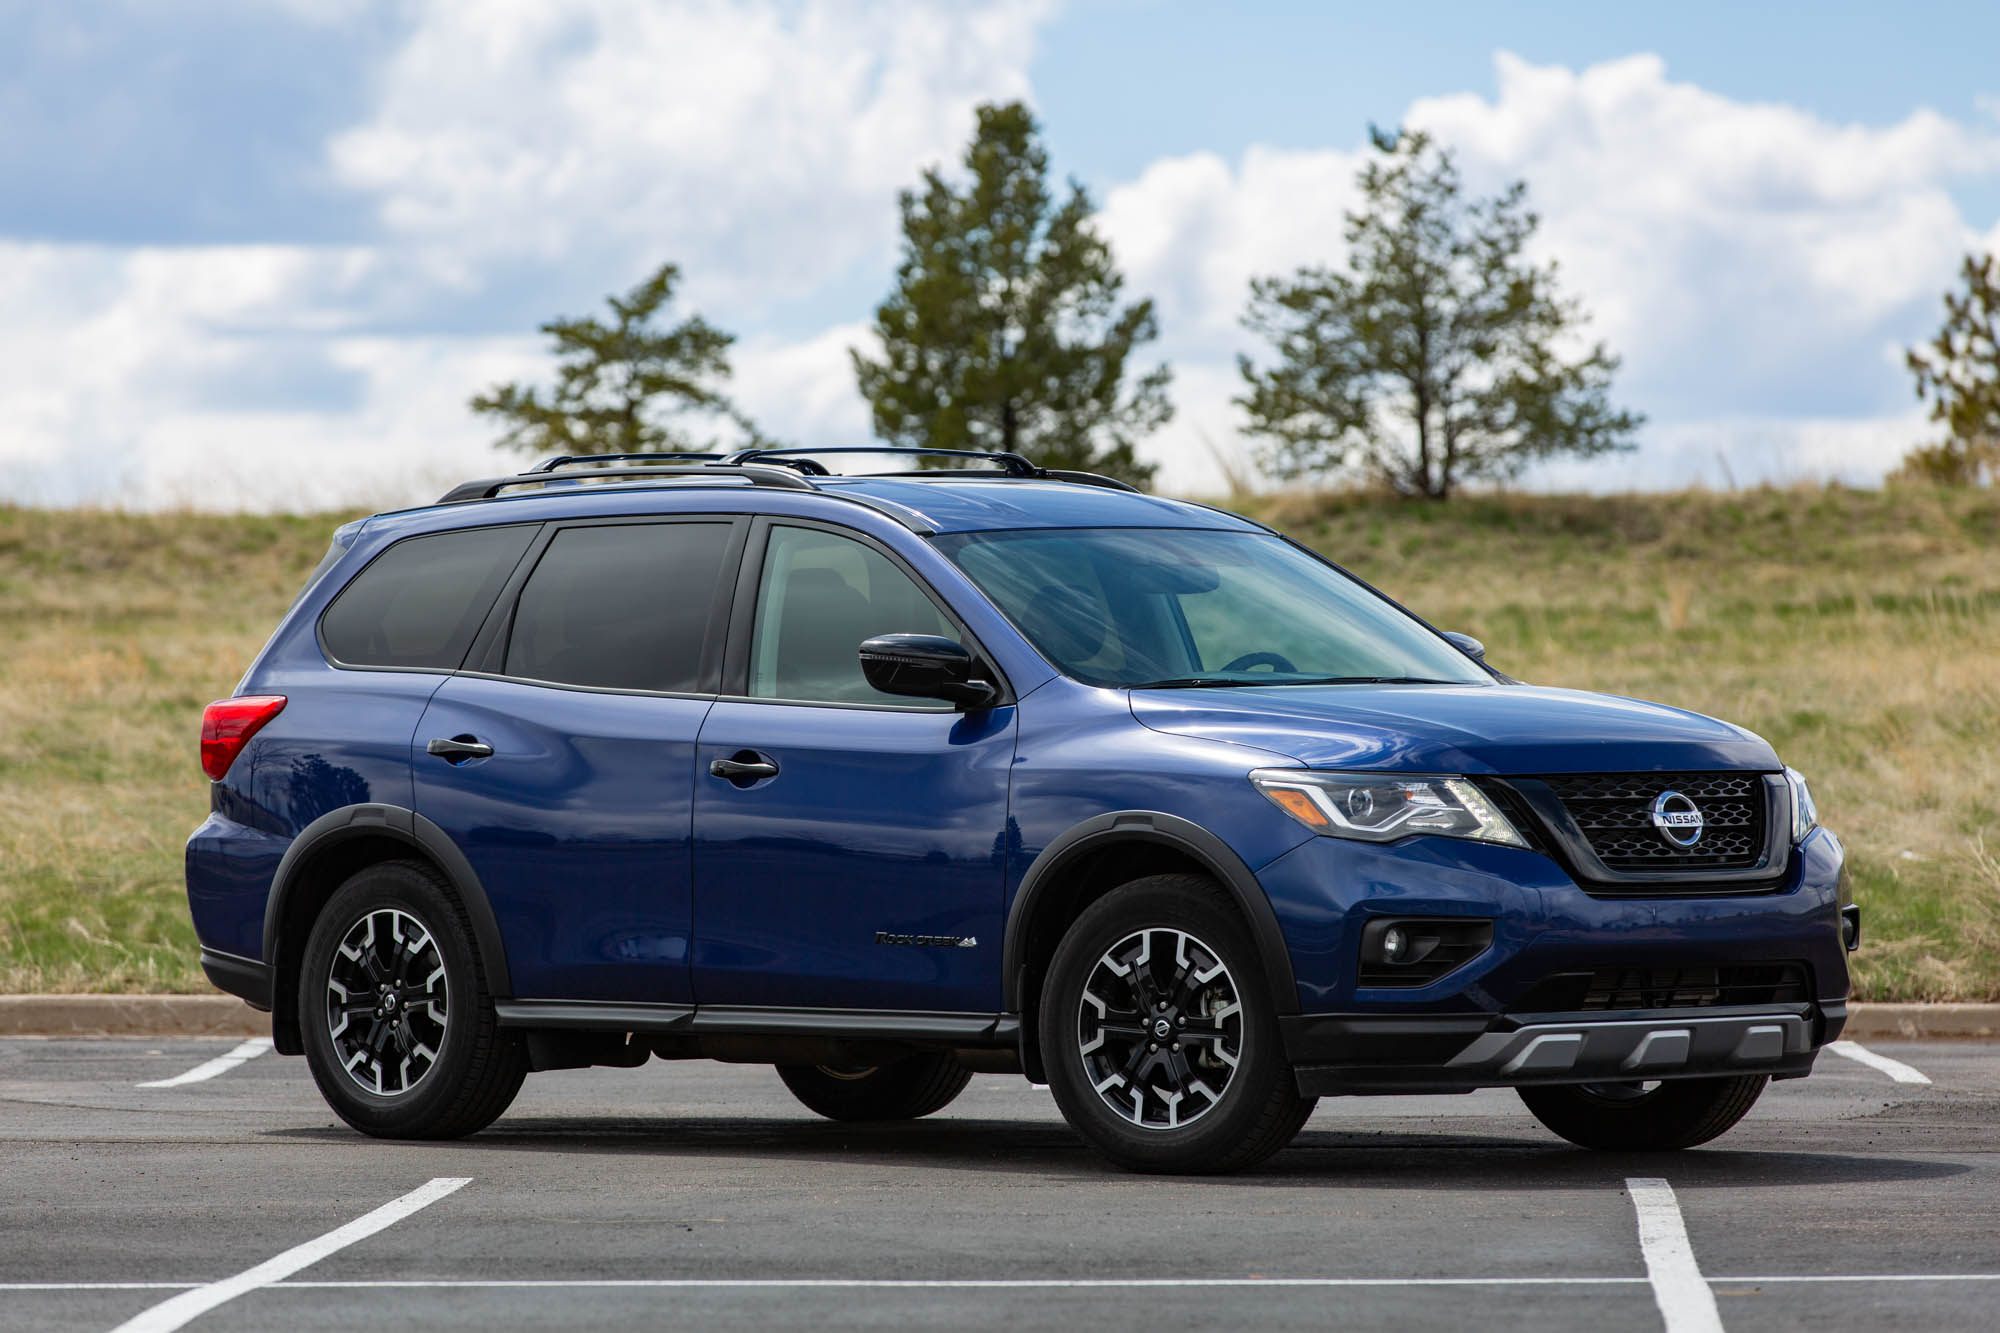 2020 Nissan Pathfinder Performance and New Engine